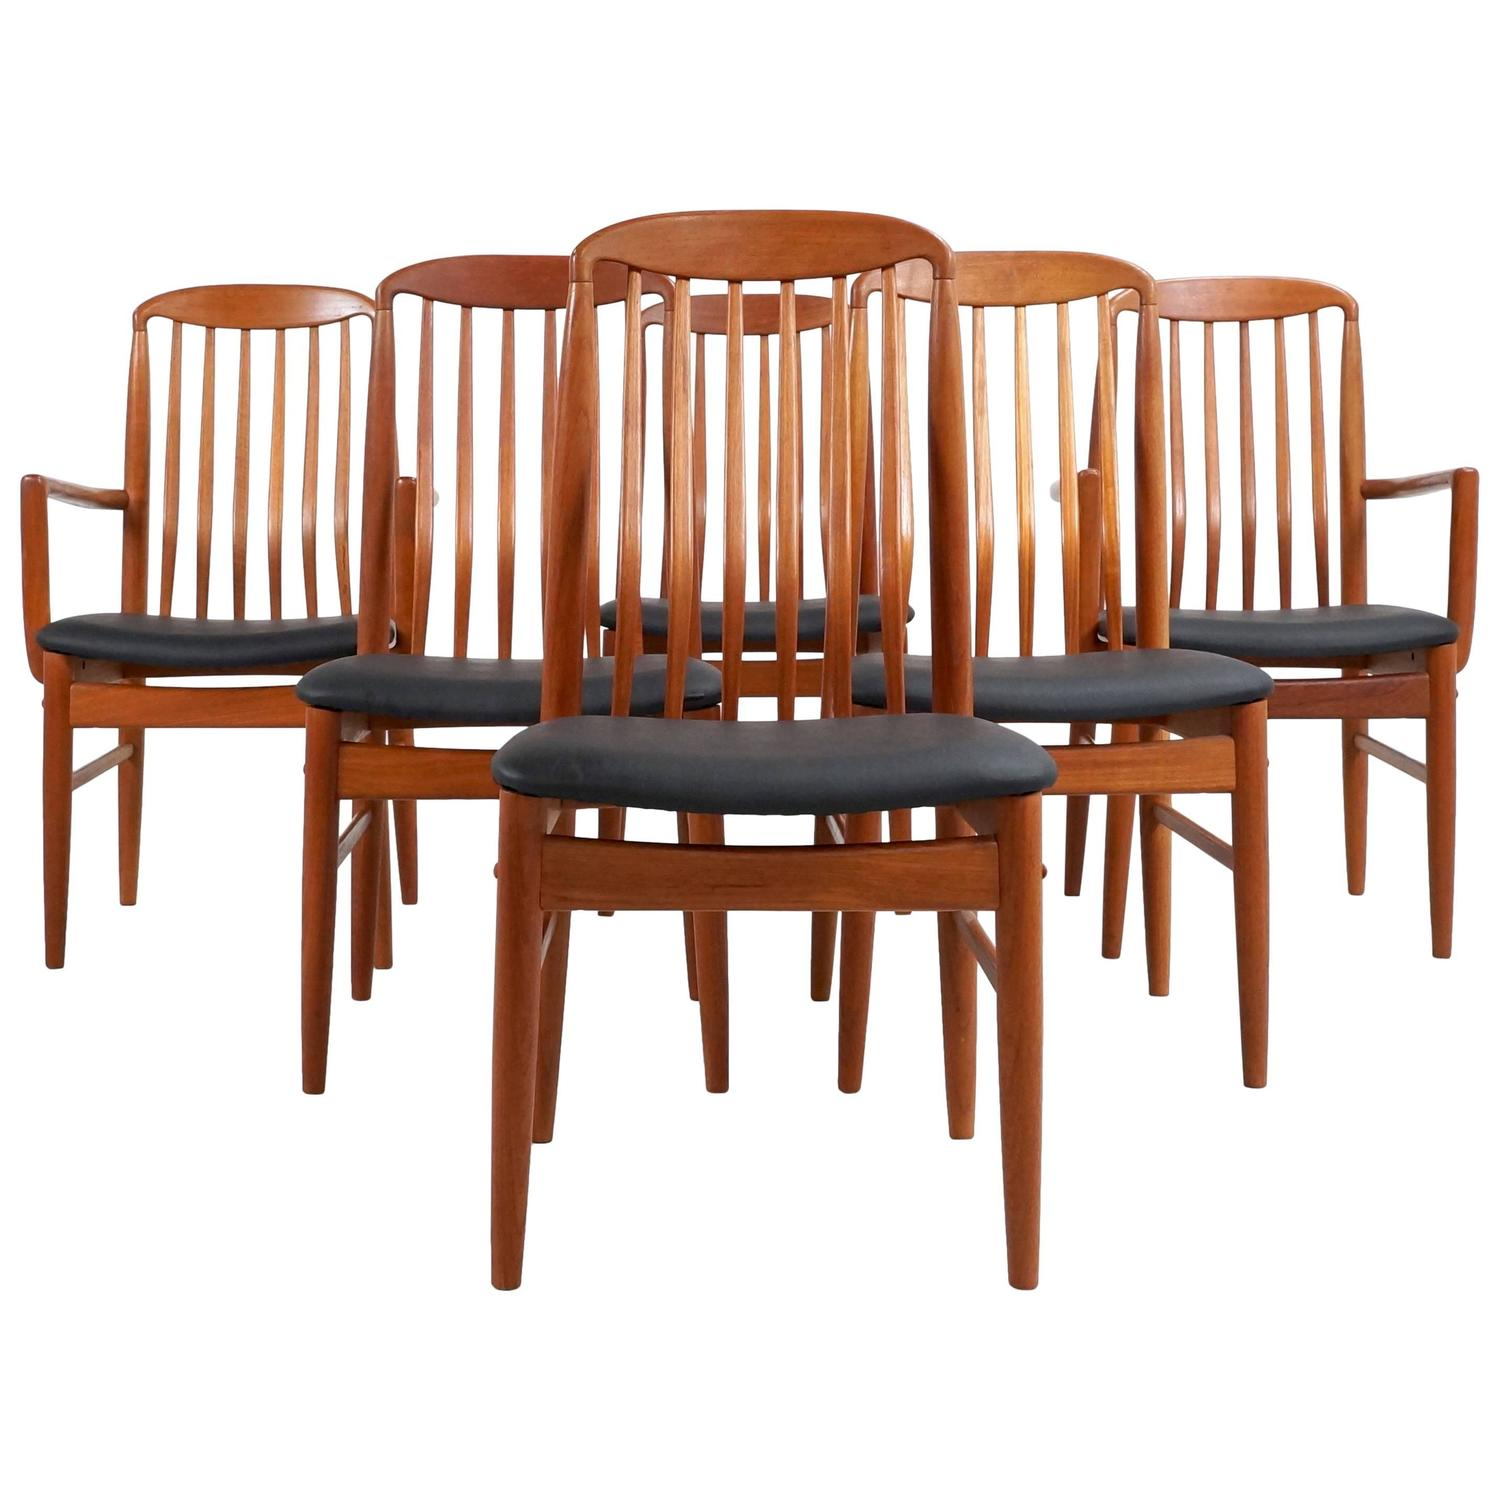 Six Danish Modern Teak Dining Chairs By Benny Linden For